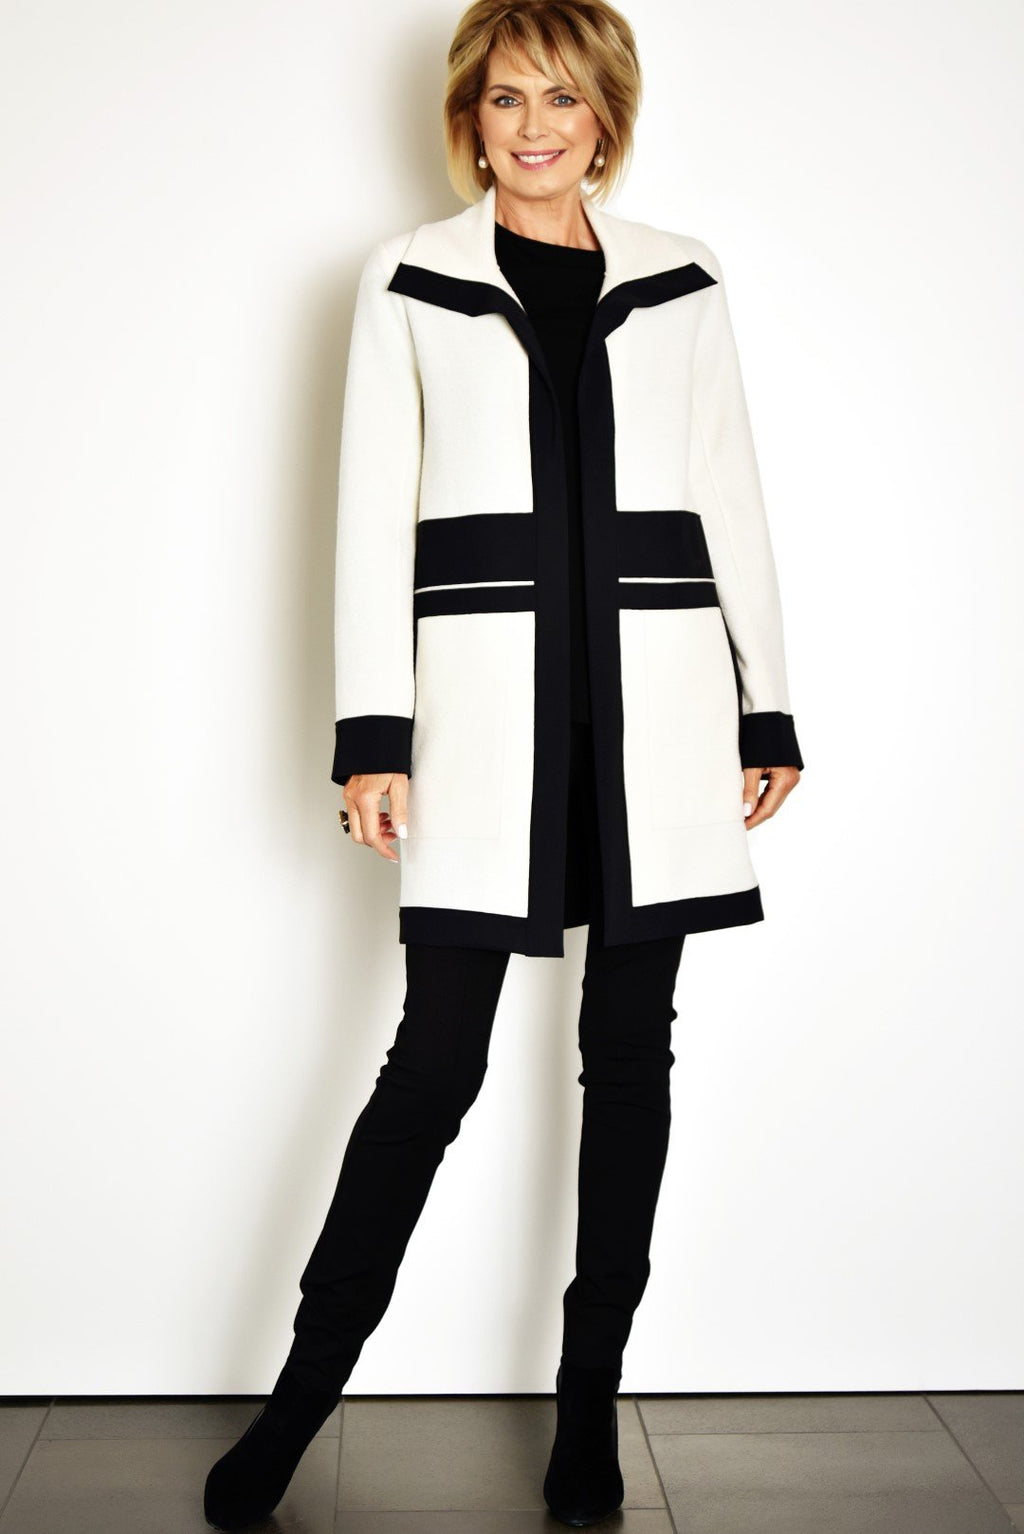 PAULA RYAN Black Trimmed Rufini Coat - Paula Ryan Fashion Collection - [product type] - Magpie Style